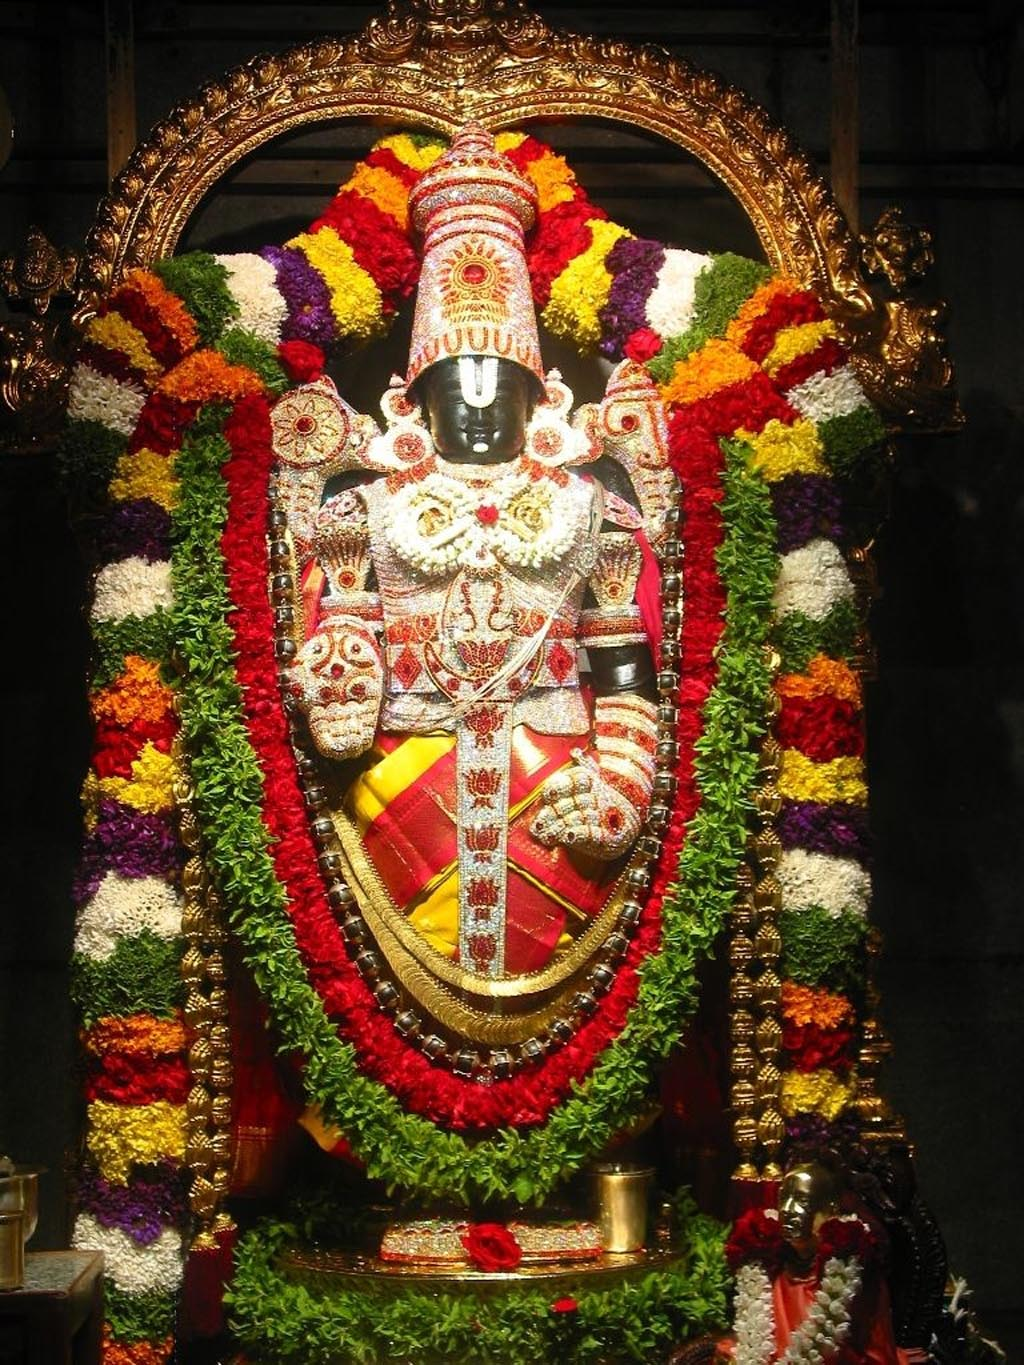 WWW Venkateswara Swami Wallpapers Com